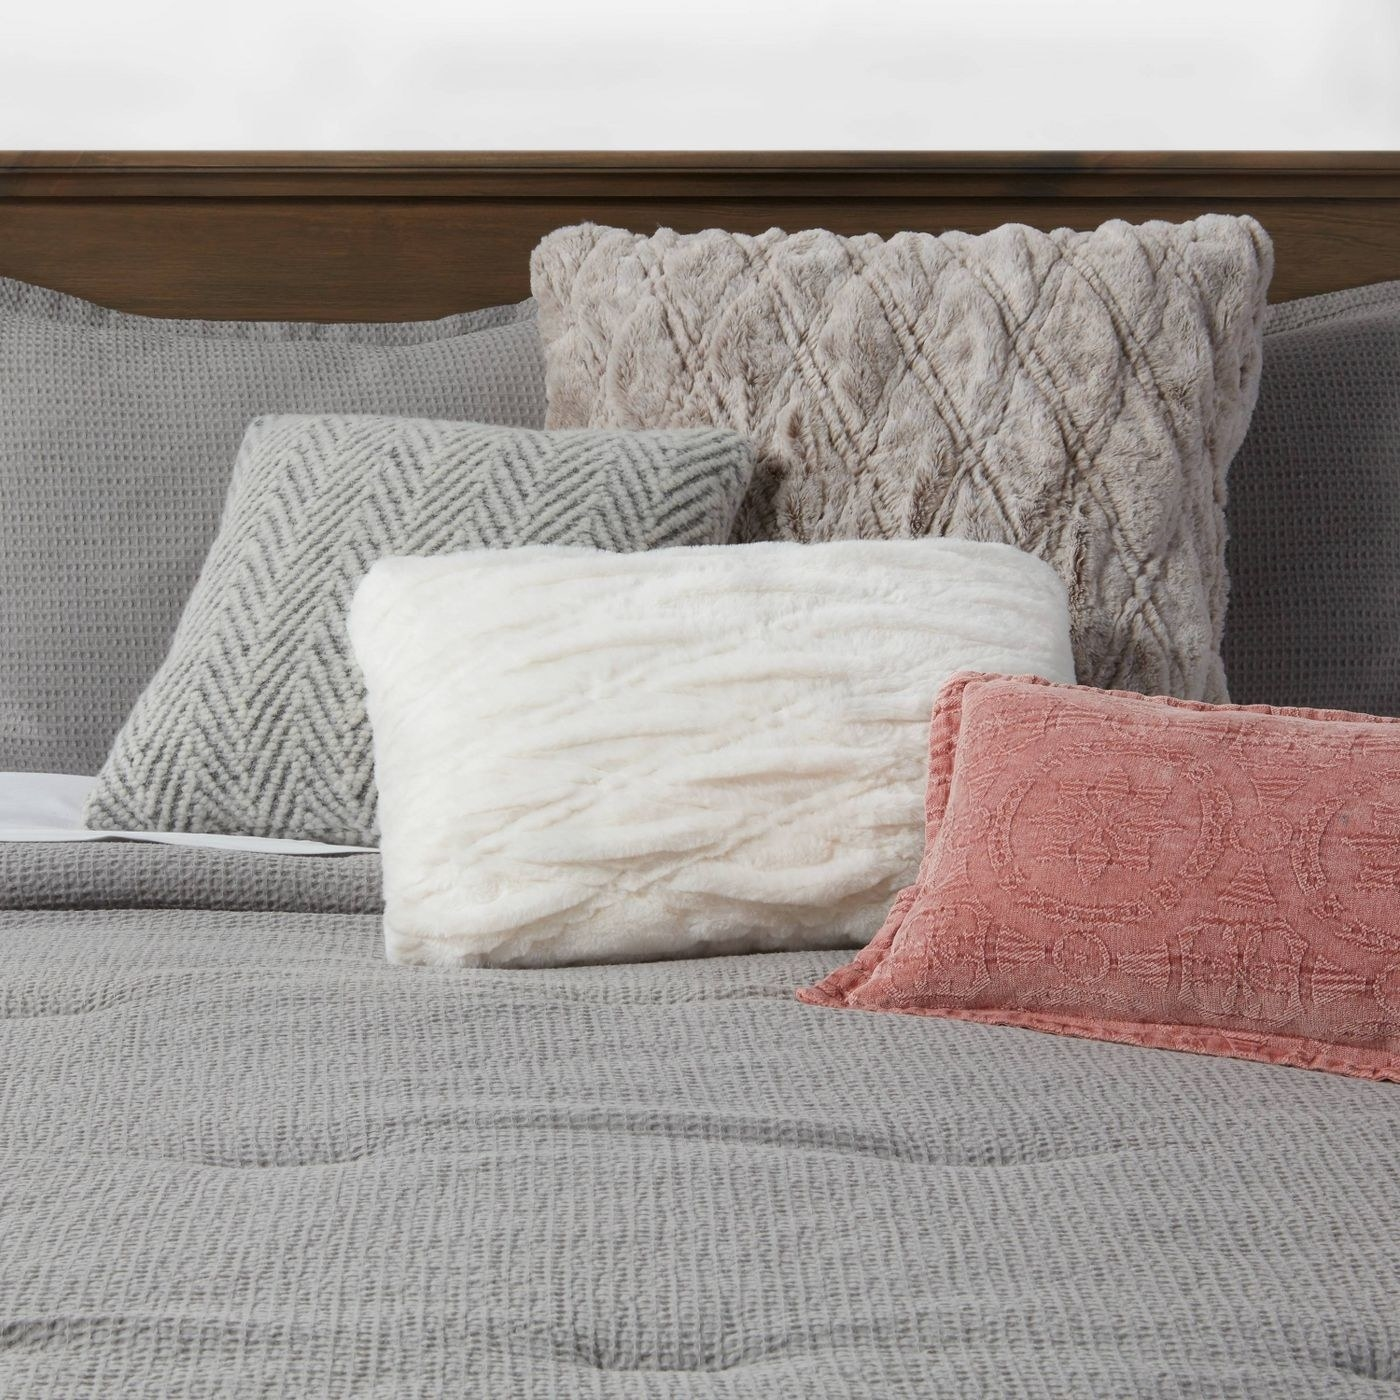 A white pillow with a pink and neutral pillow